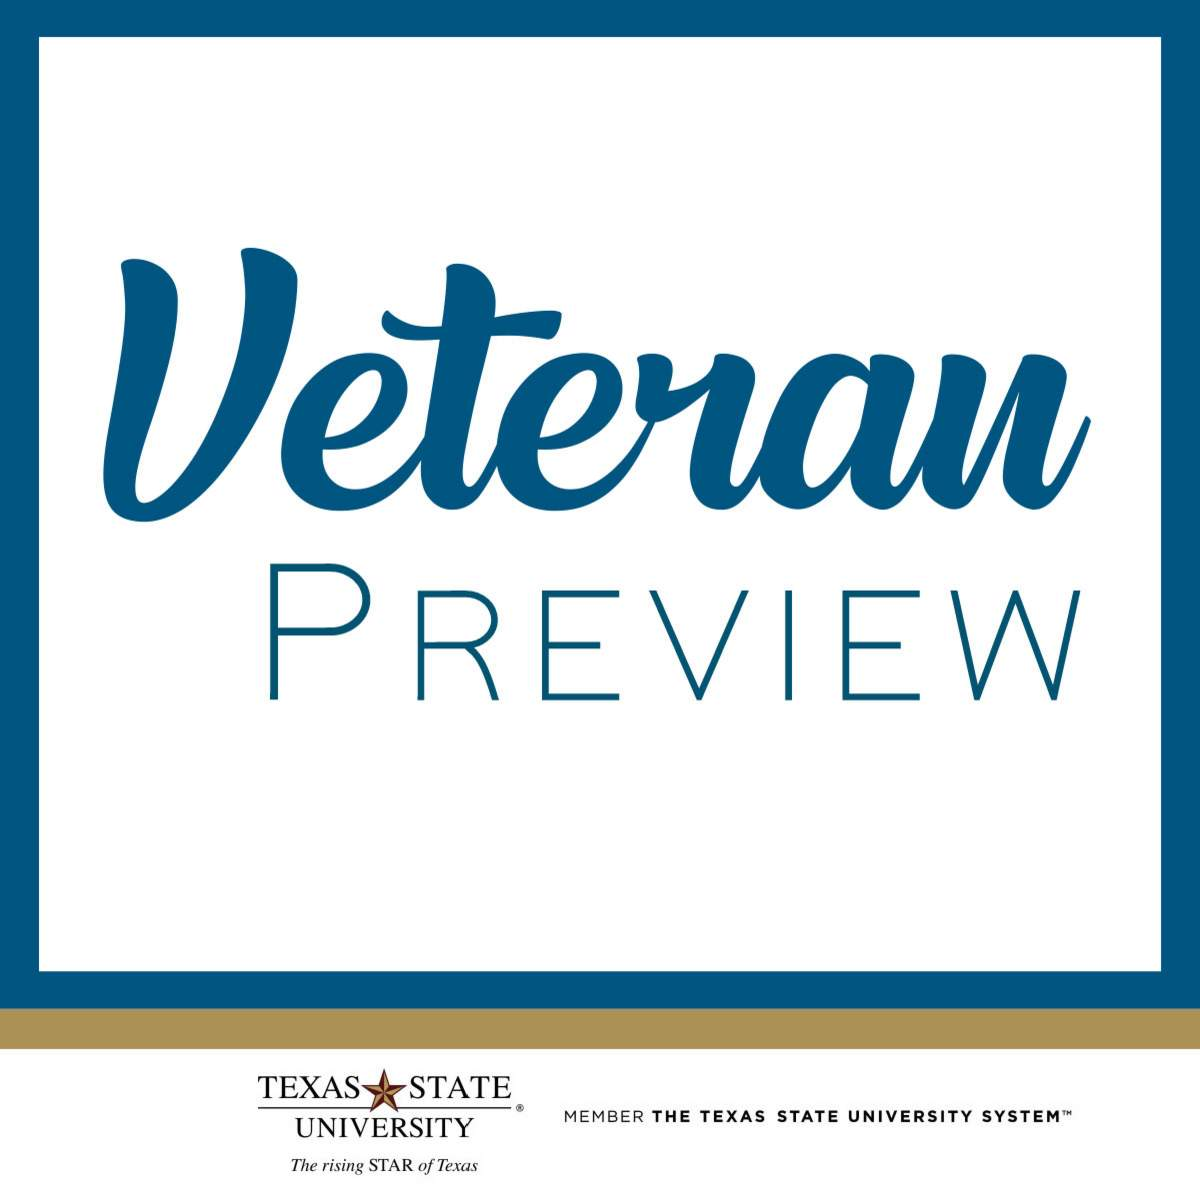 Veteran Preview - Logo